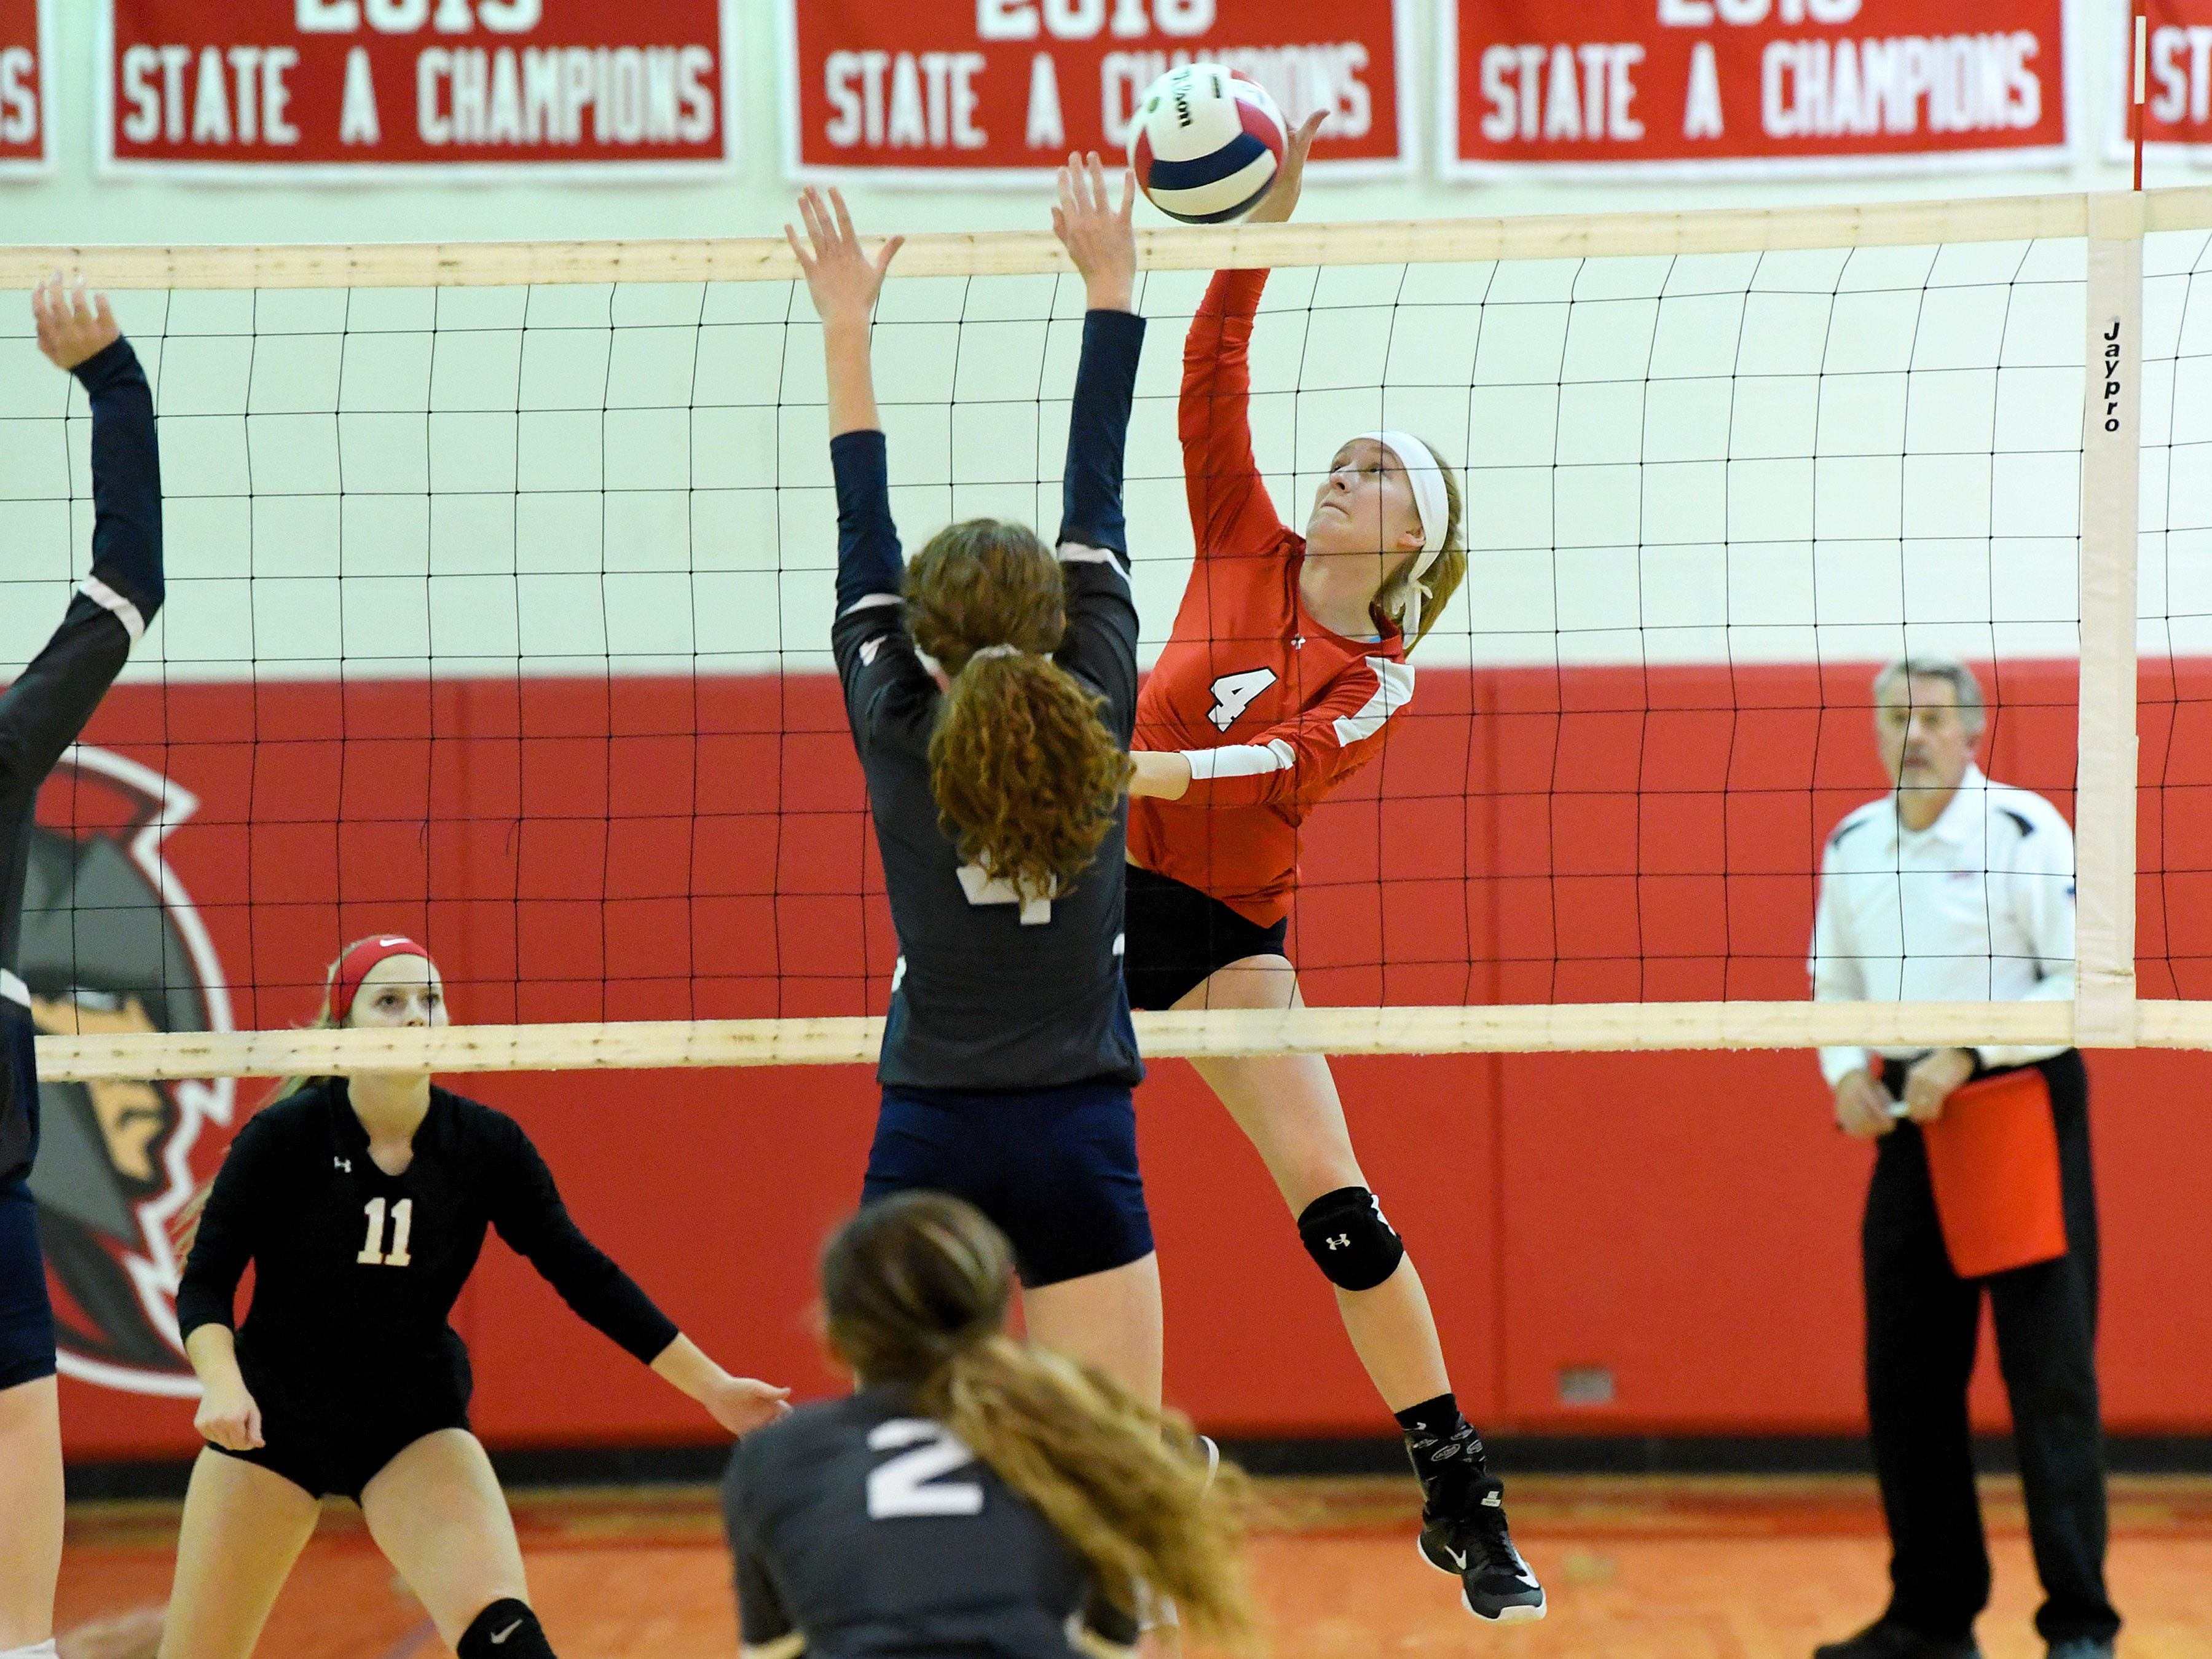 Riverheads' Emma Tomlinson hits the ball back across the net past William Campbell's Jonnah Williams during a Region 1B quarterfinal match, played in Greenville on Thursday, Nov. 1, 2018.